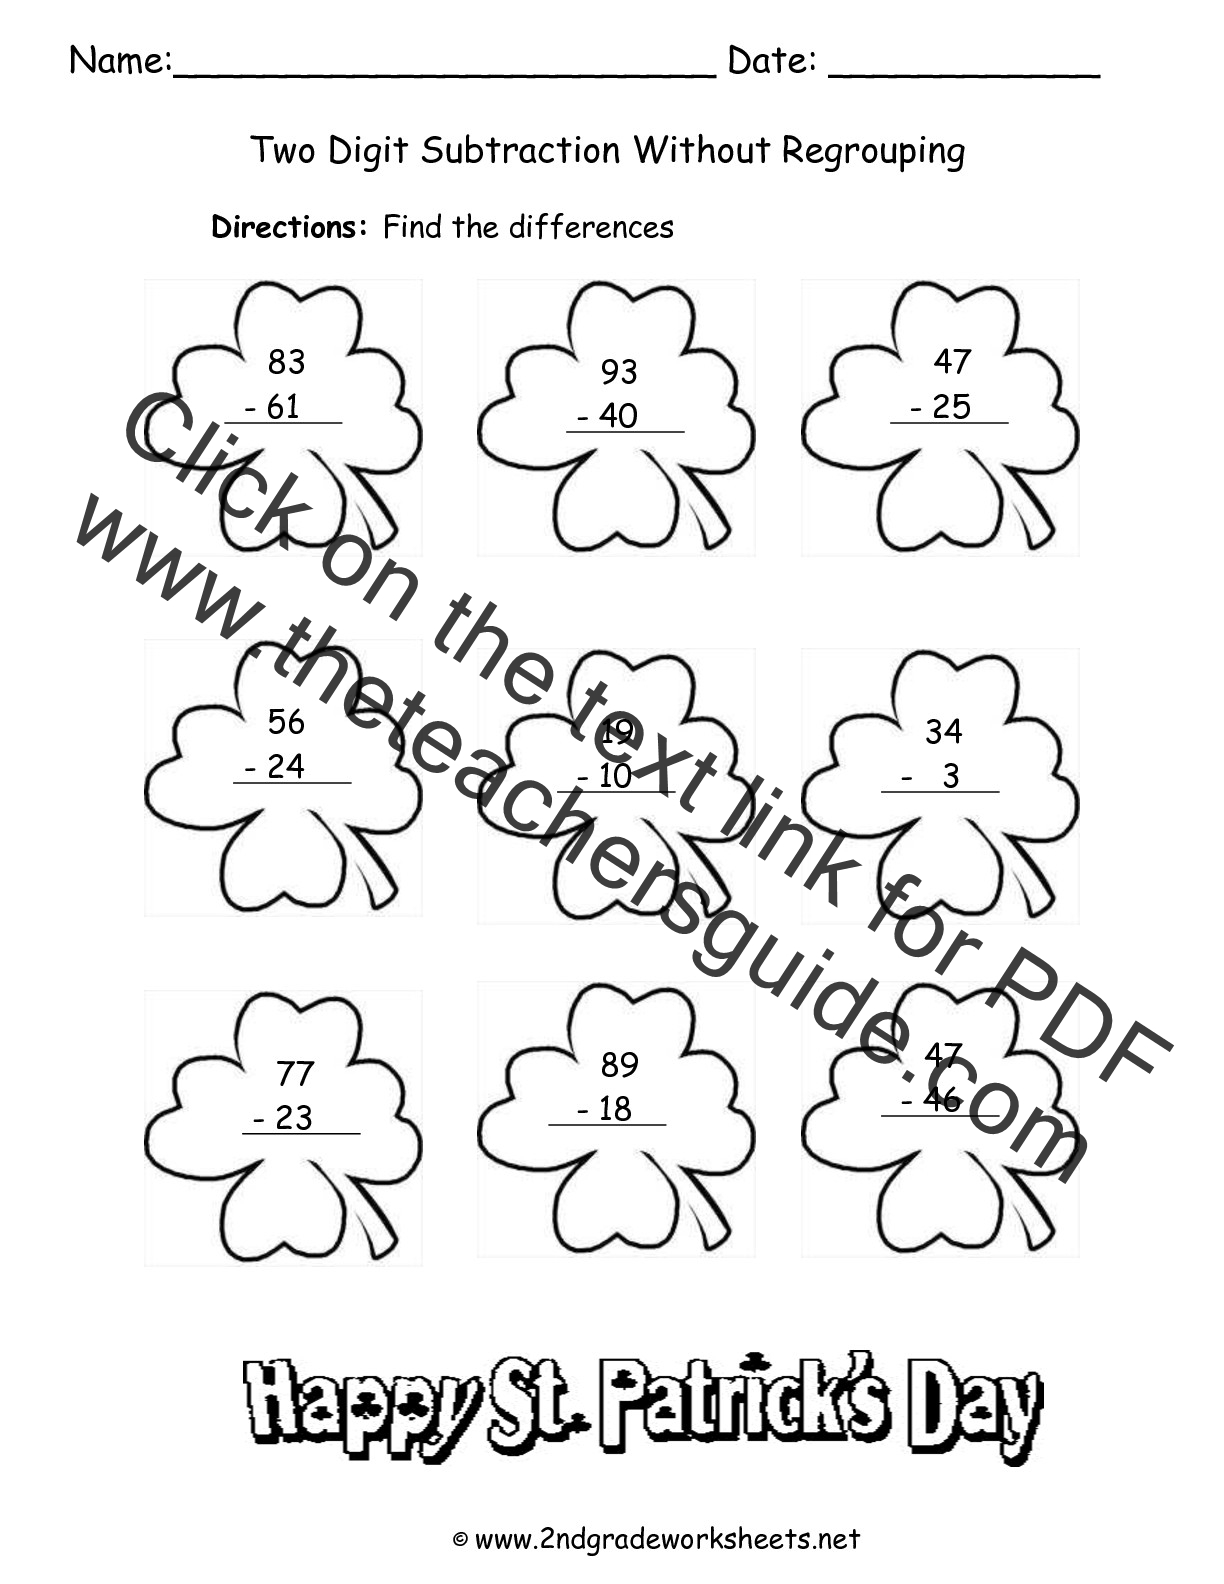 2ndgradeworksheets.net-Free worksheets and printables for teachers